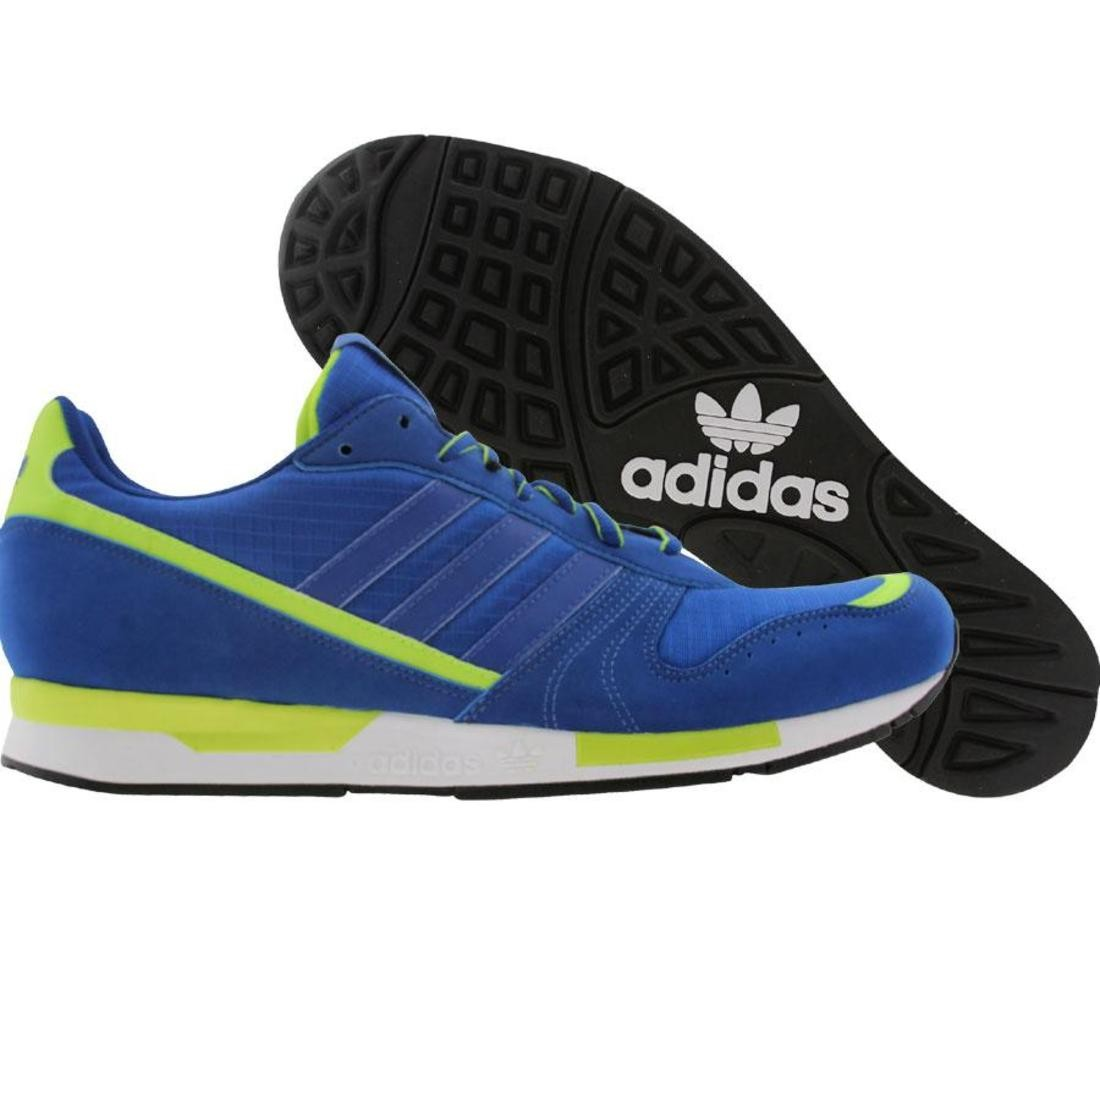 【海外限定】アディダス メンズ靴 靴 【 ADIDAS MARATHON 88 COLLEGE ROYAL SLIME RUNNINWHITE 】